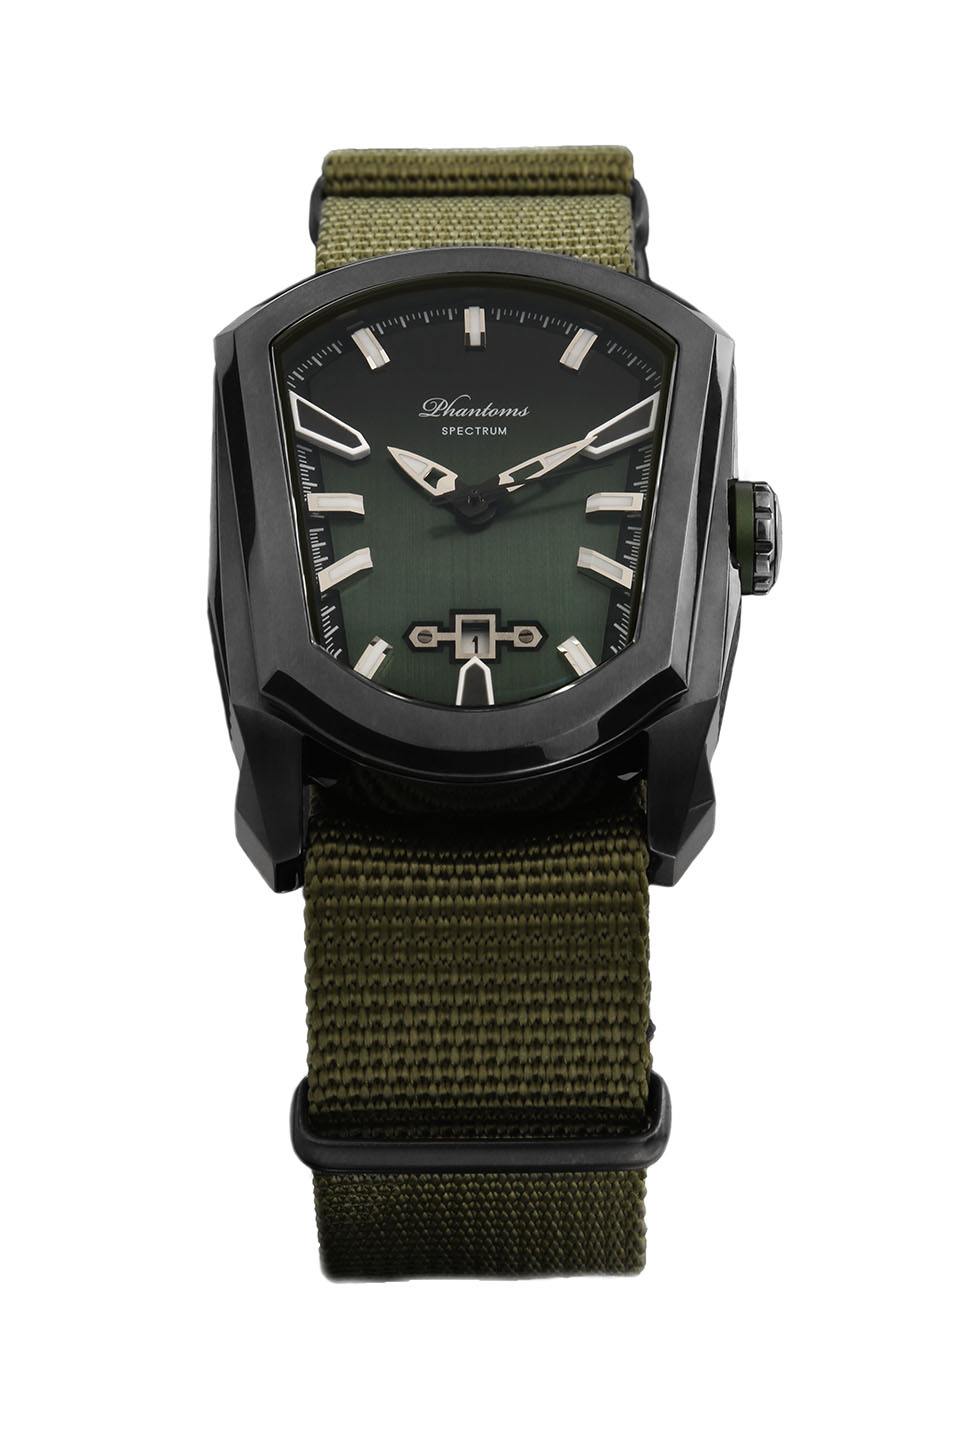 PHTW401-01 Wraith Spectrum Phantoms Miyota Automatic Watch